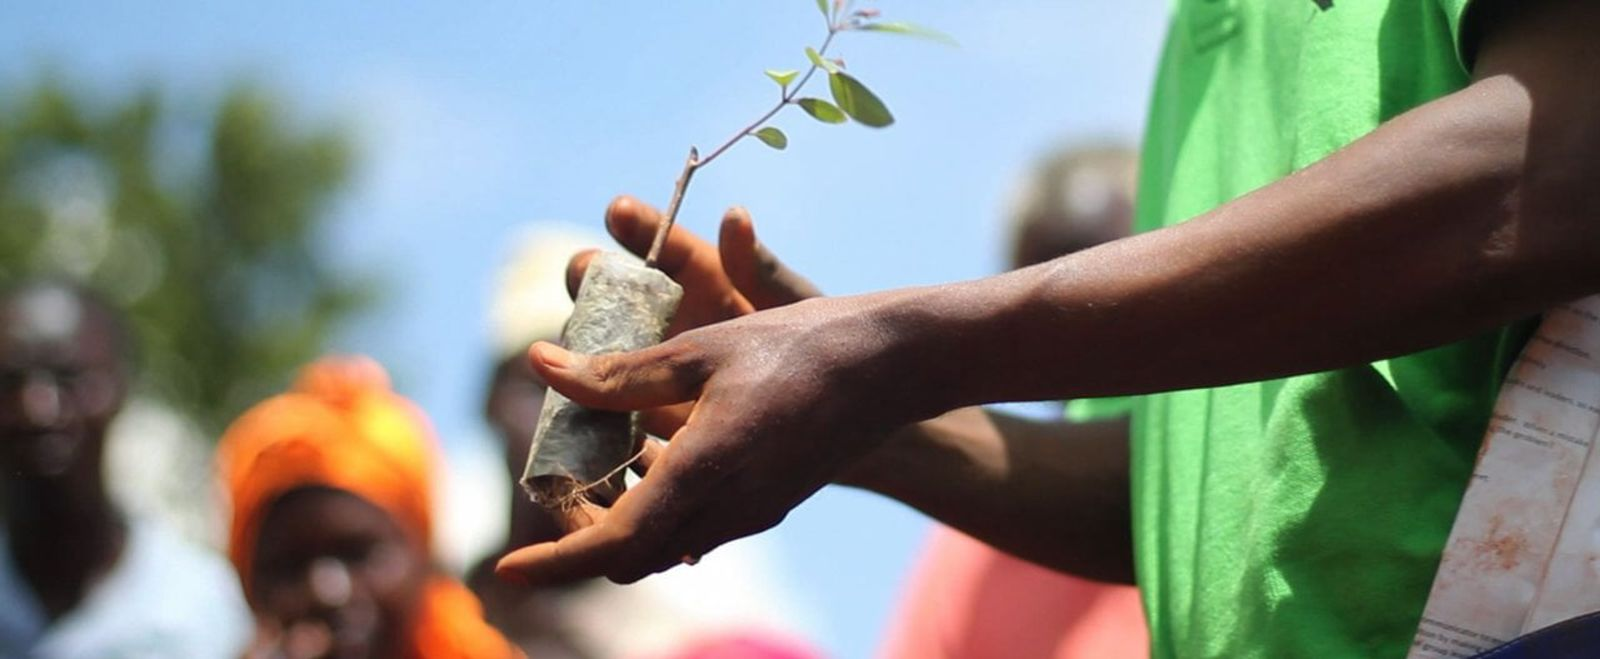 Hands hold up a baby tree as a crowd looks on.